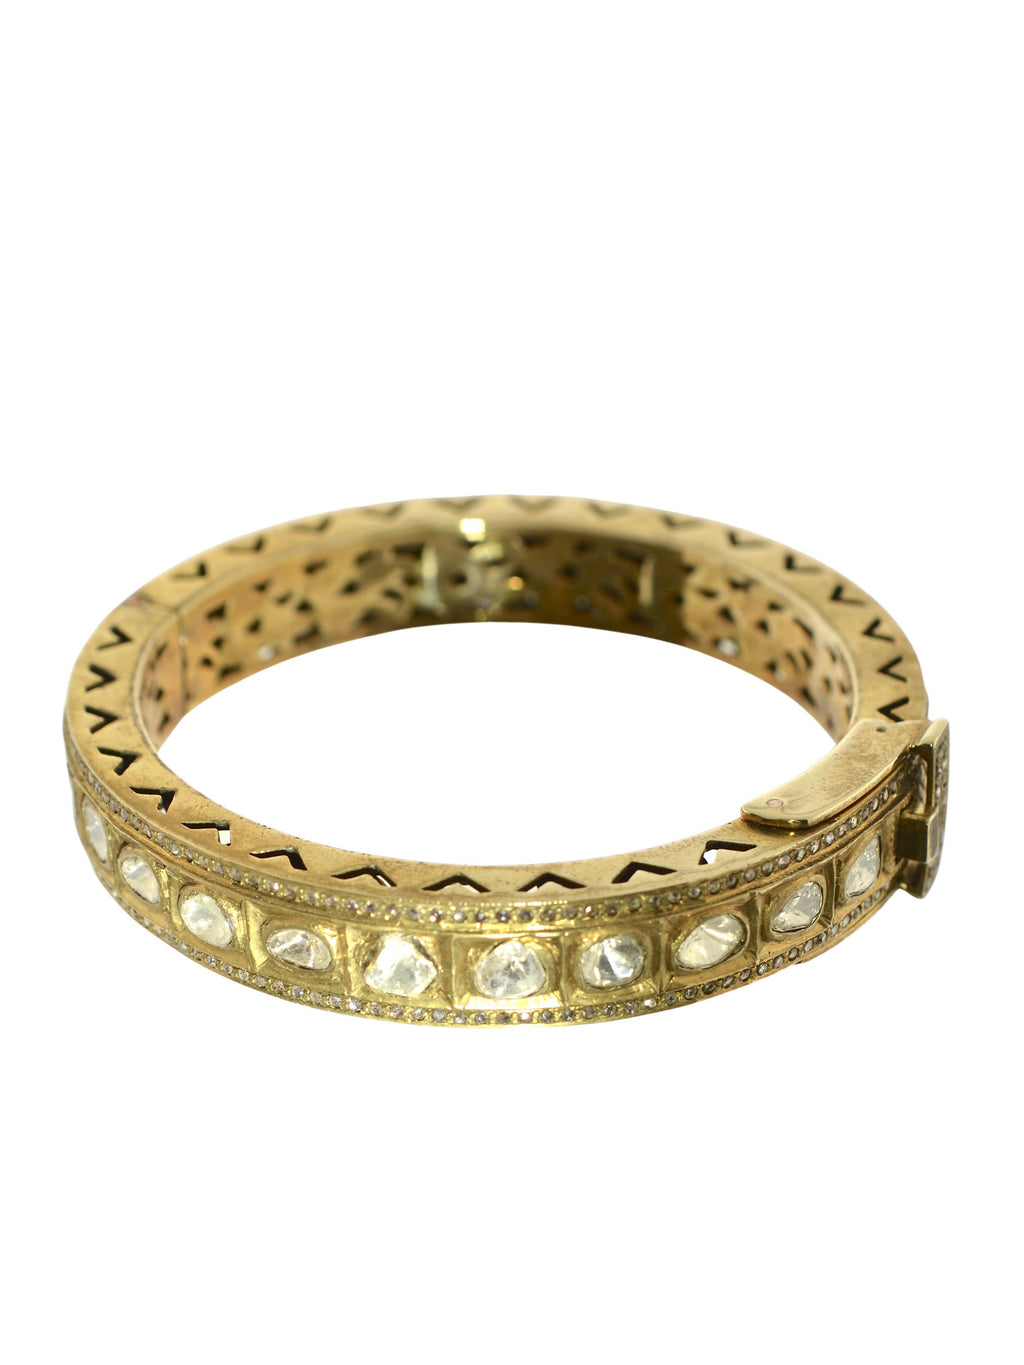 Rose Cut and Pave Diamond Brass Bangle